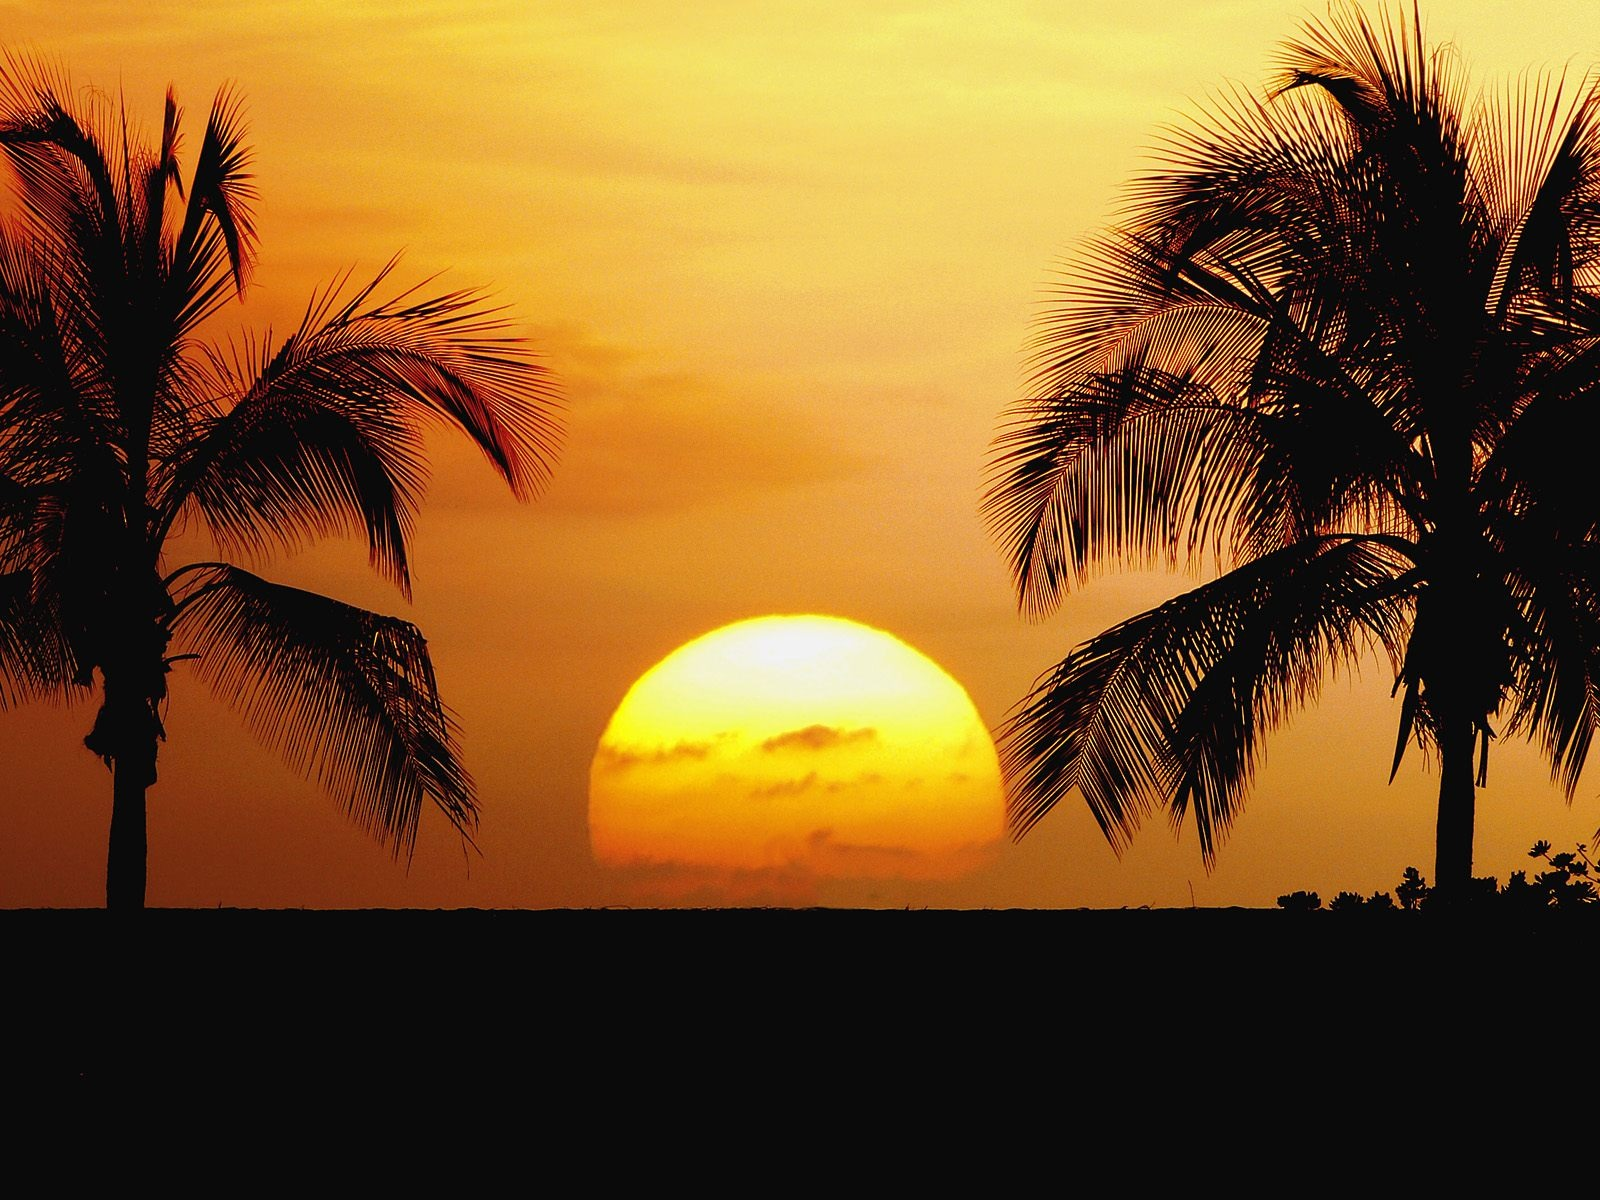 Beach Palm Tree Sunset Wallpaper Palm Tree Sunset Wallpaper 2